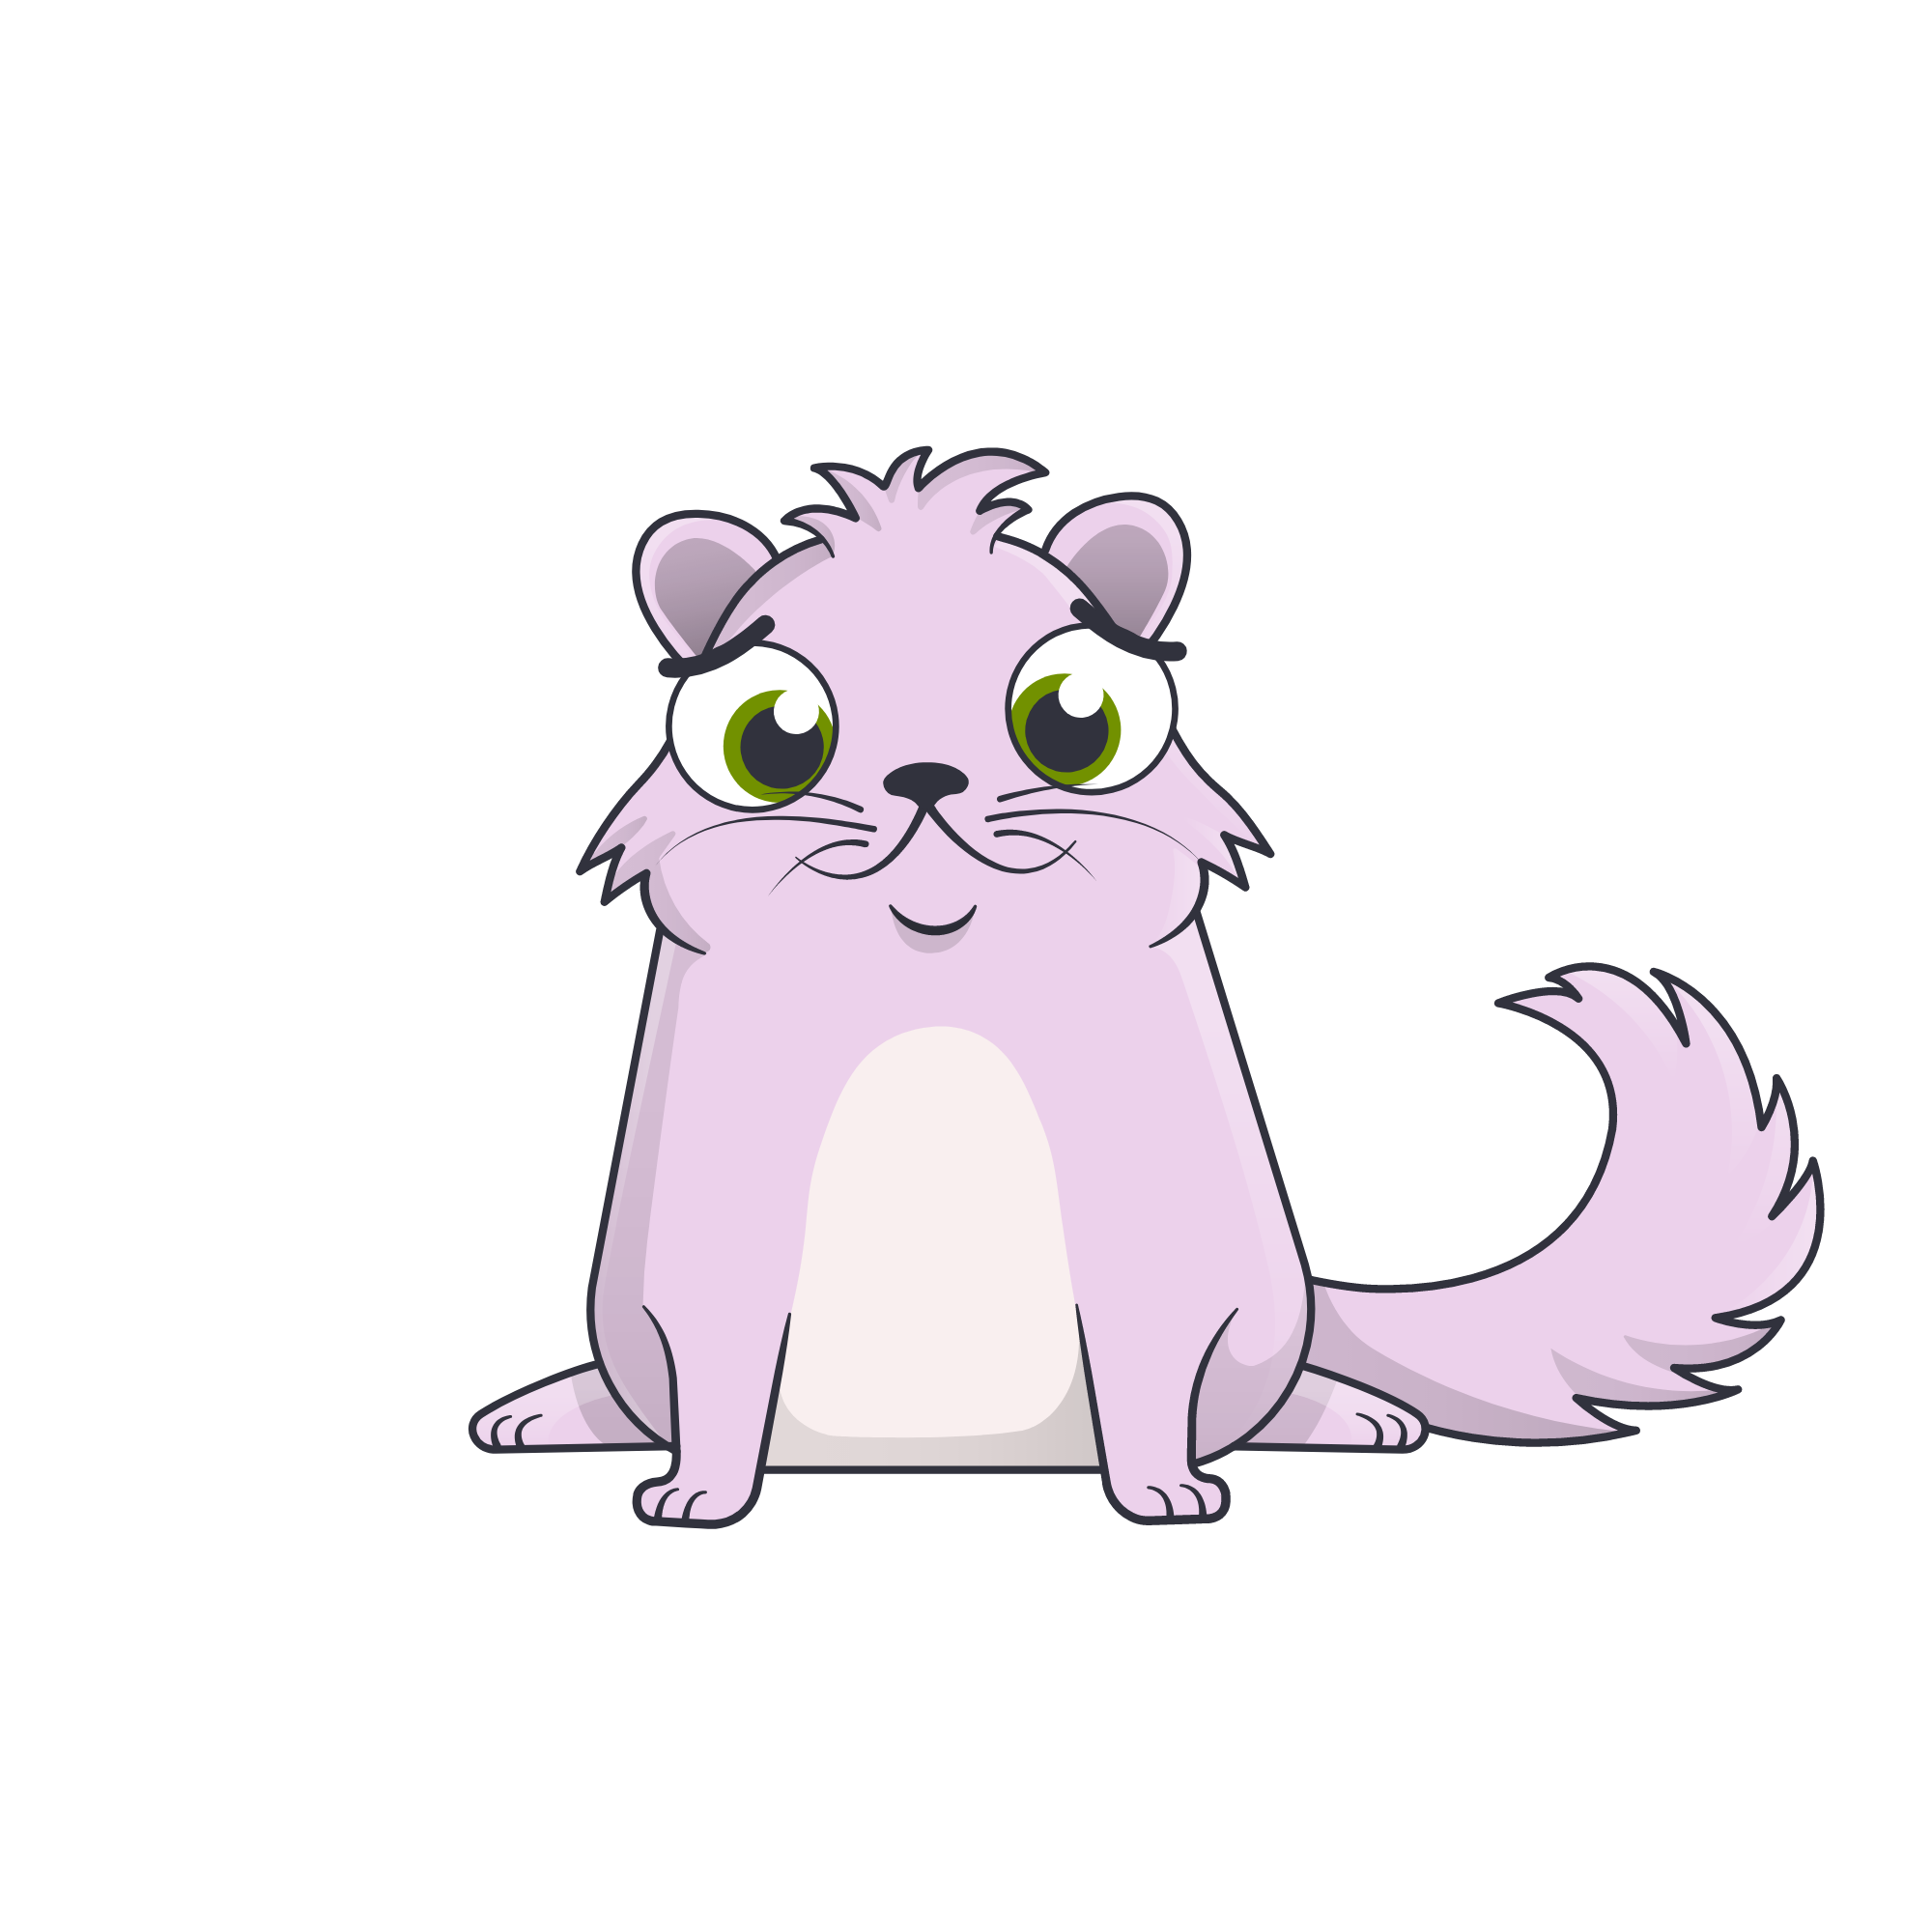 cryptokitty #1163110